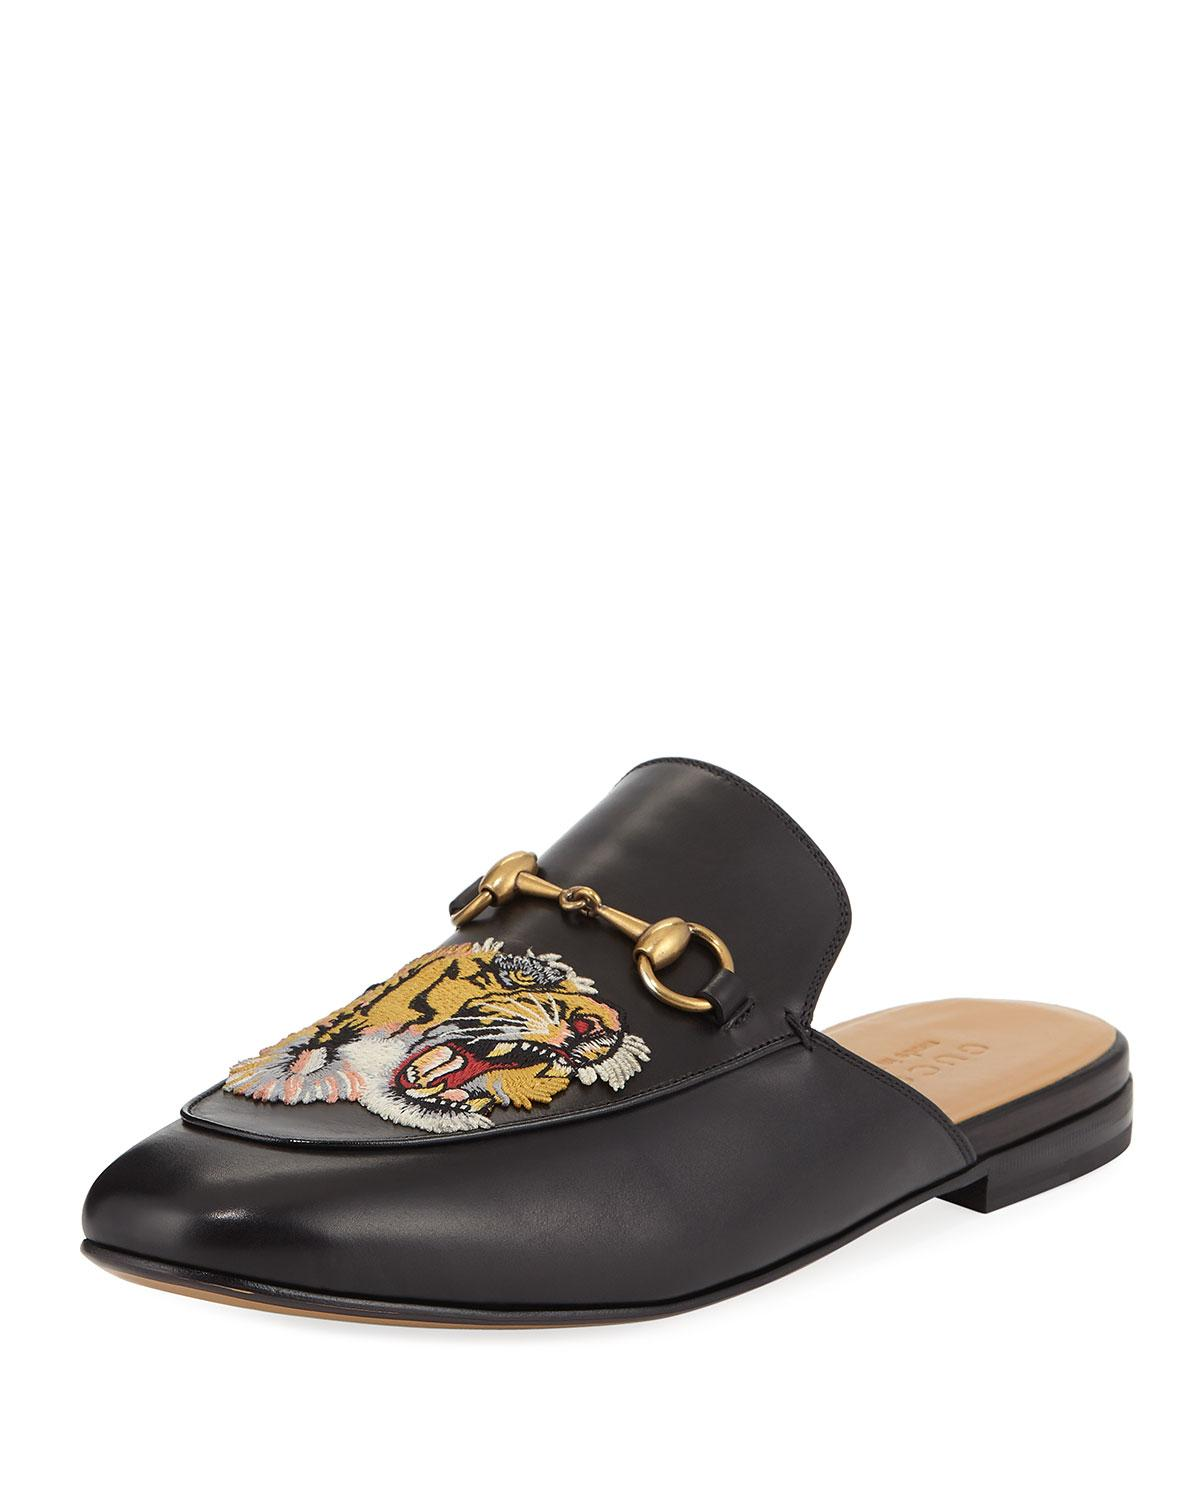 b5fe9c705eb Lyst - Gucci Kings Tiger Leather Mule in Black for Men - Save 57%